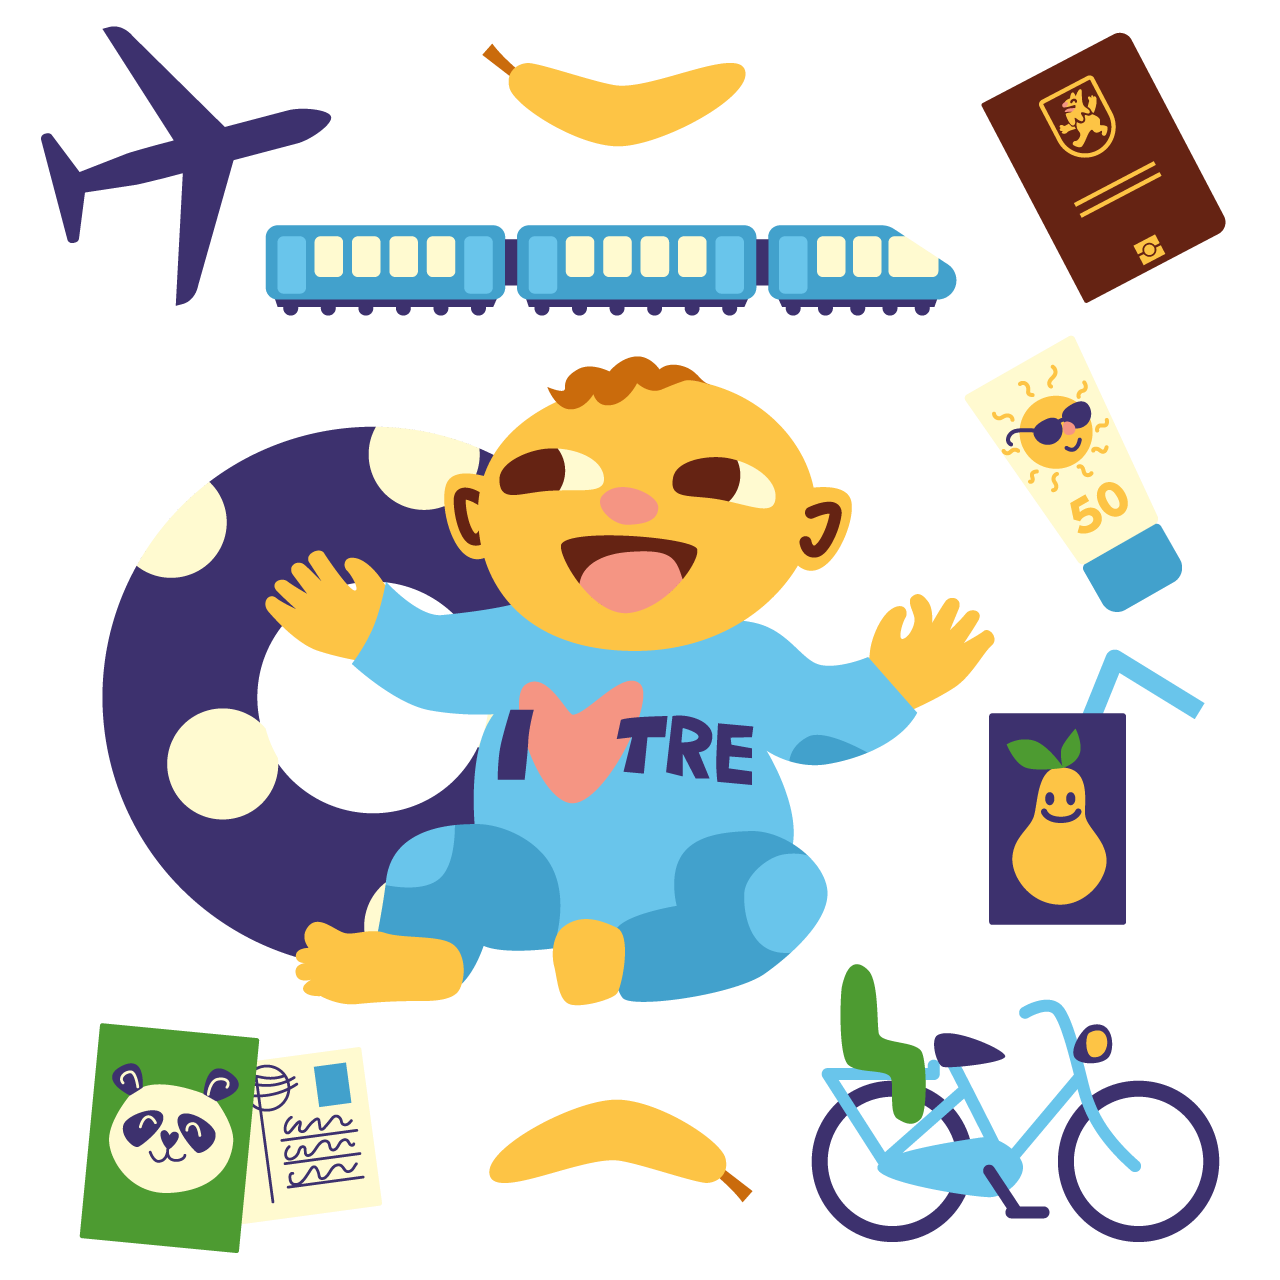 Travelling with a baby. Tired clipart dehydrated